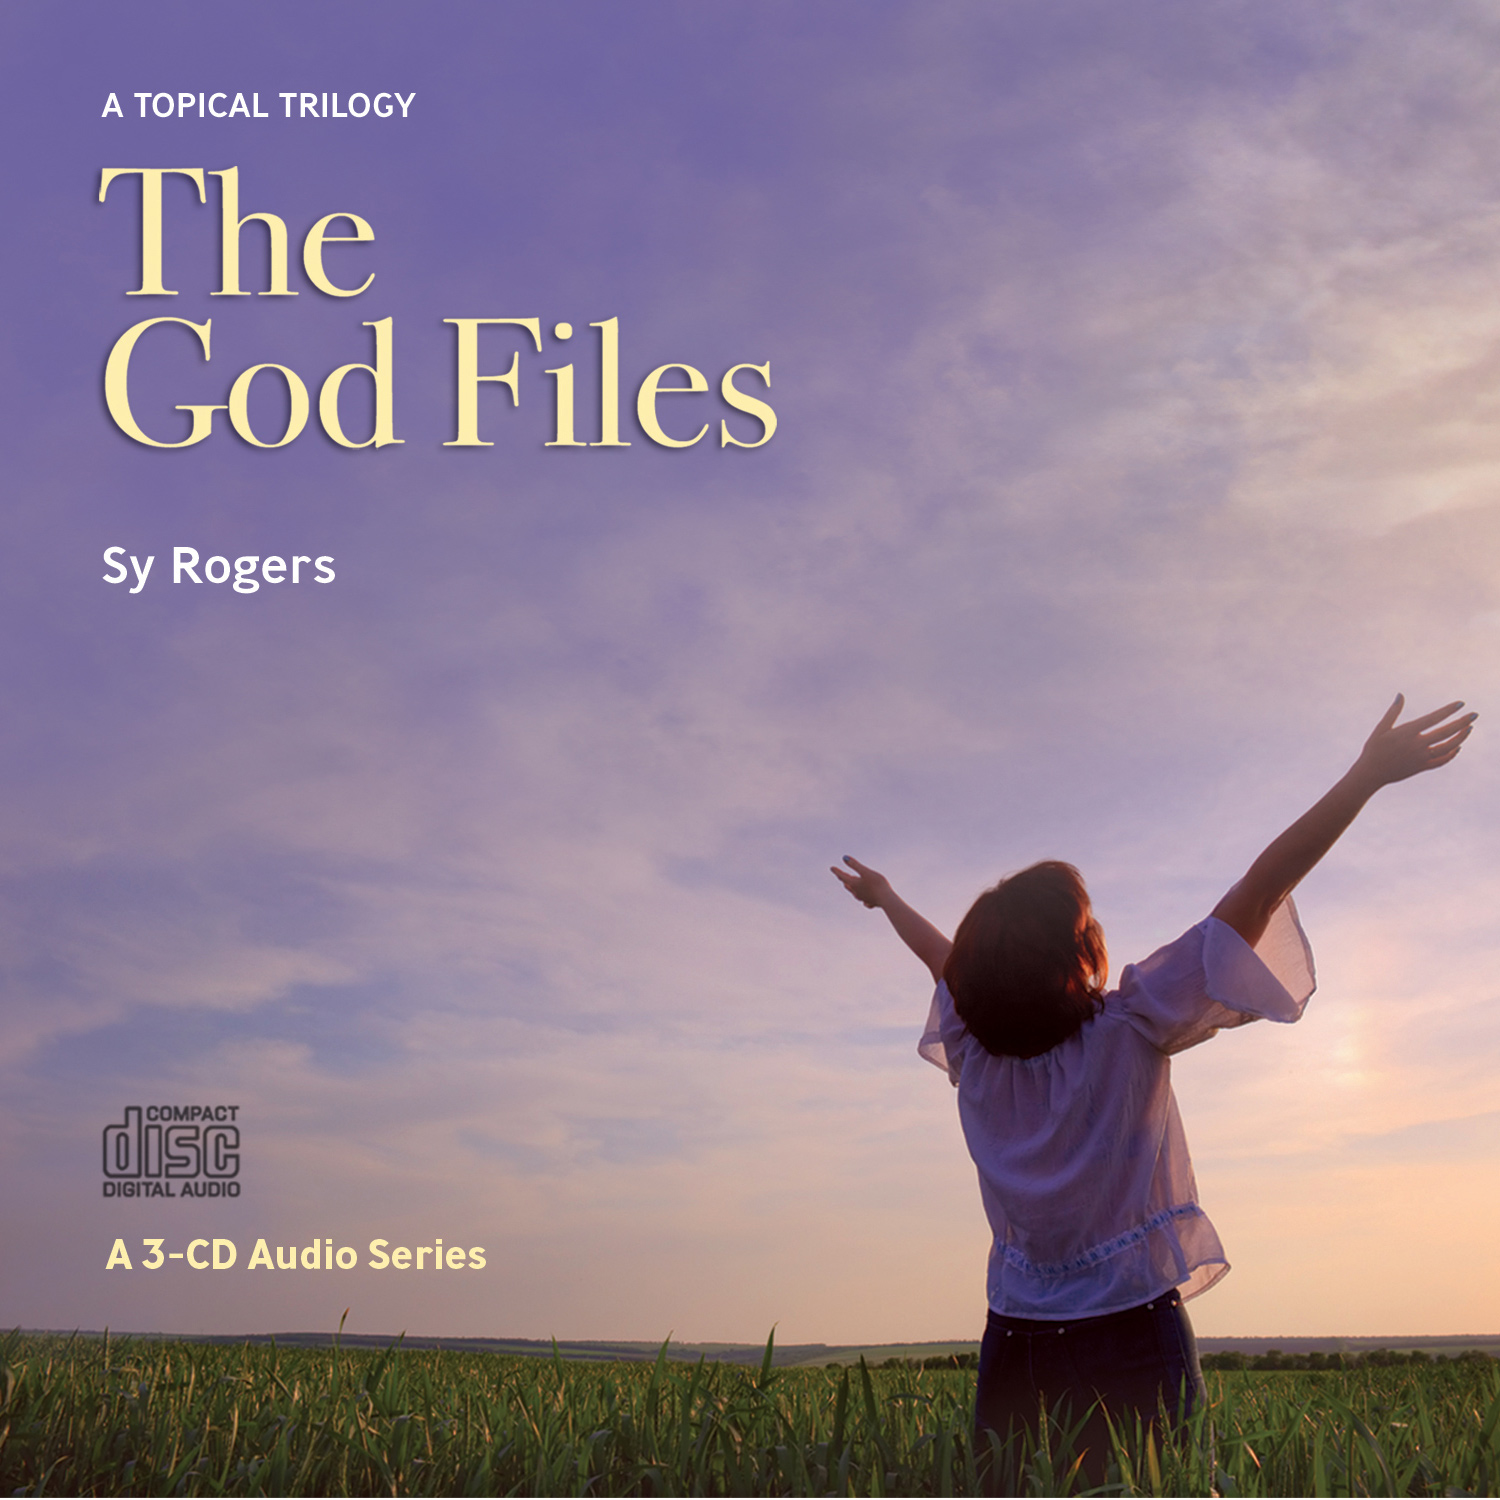 The God Files